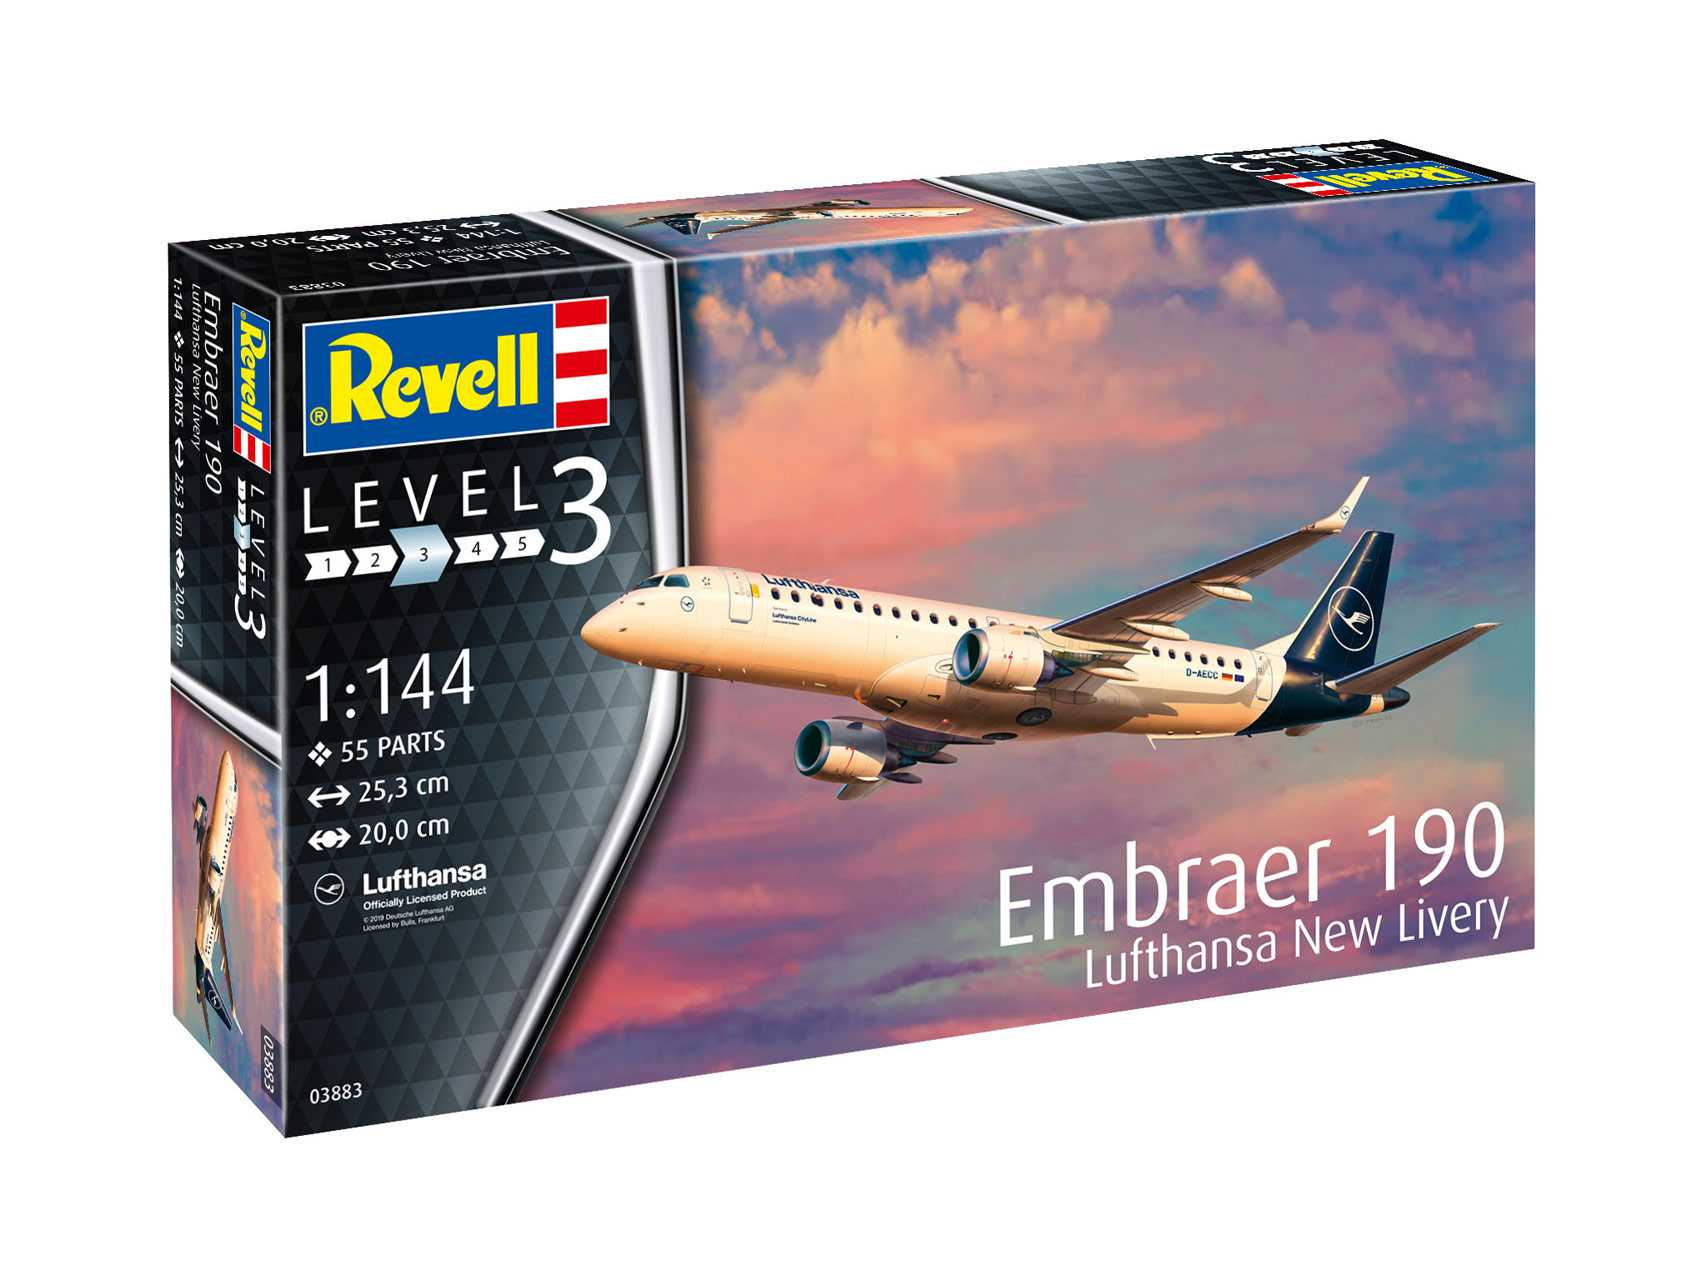 1:144 Embraer 190, Lufthansa New Livery